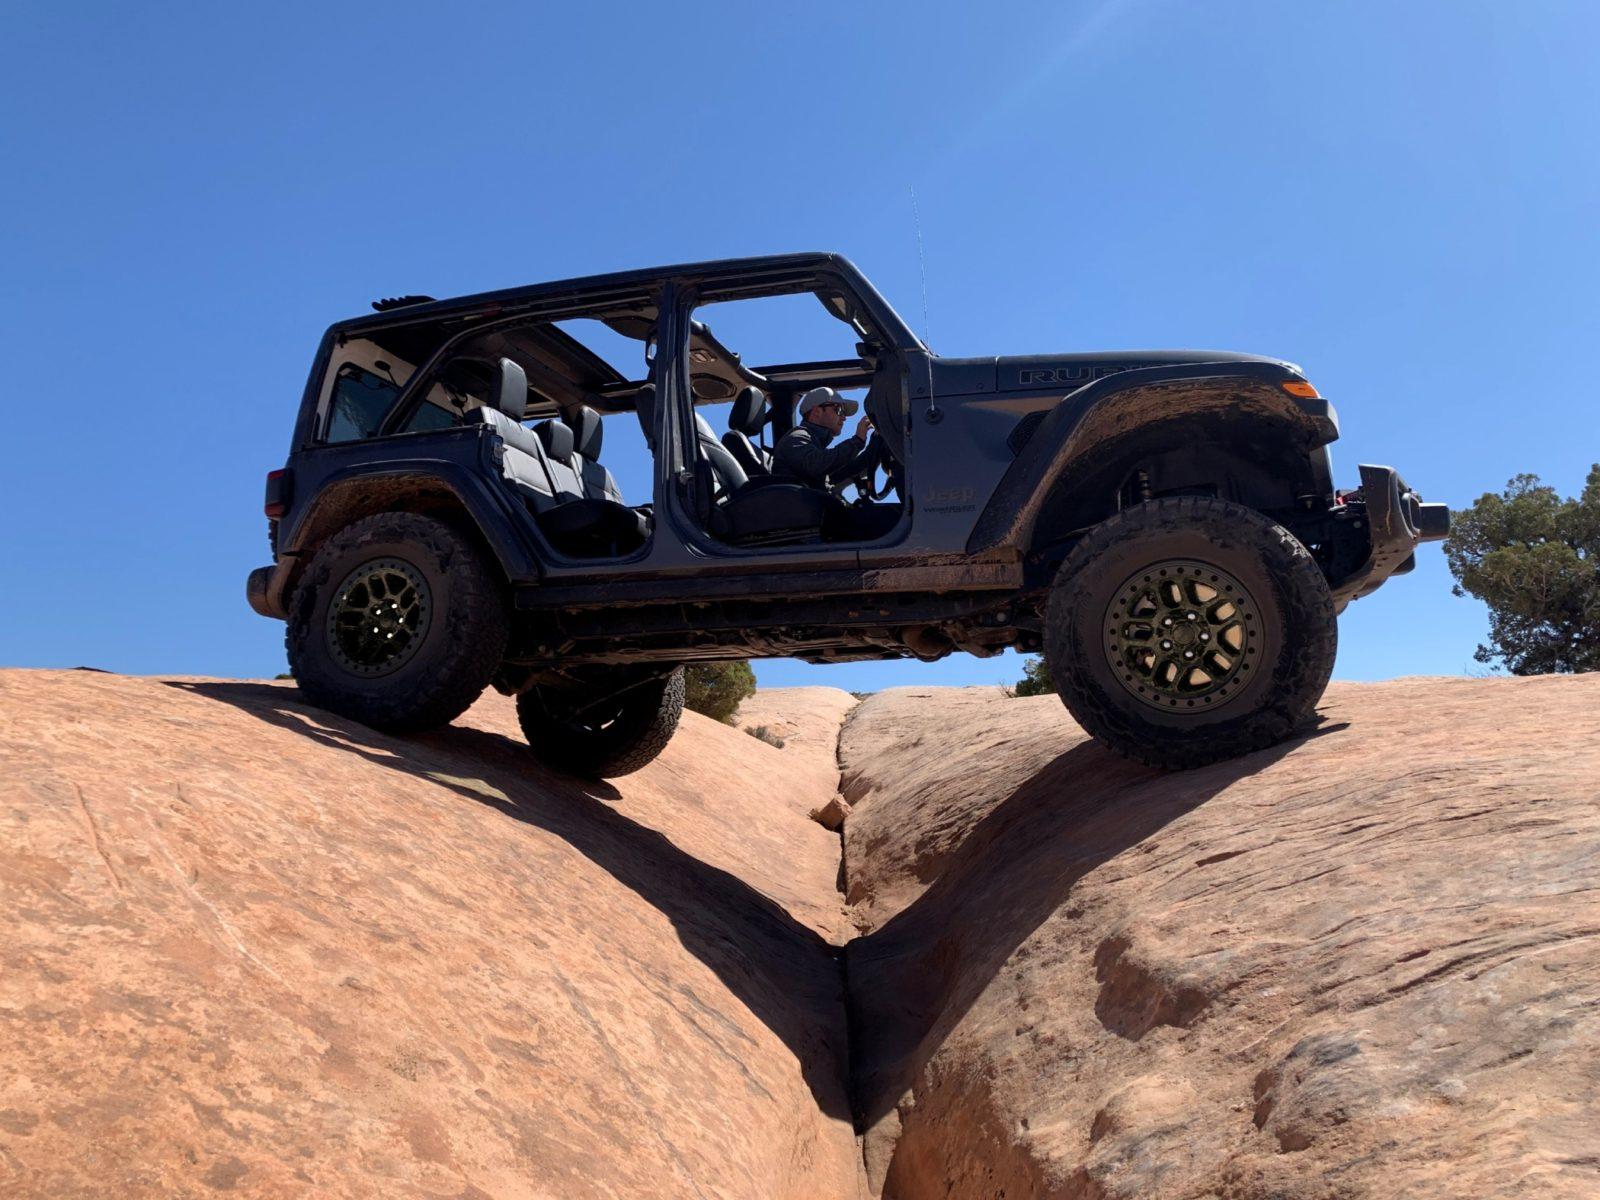 2021-jeep-wrangler-rubicon-xtreme-recon-package-priced-at-$3,995